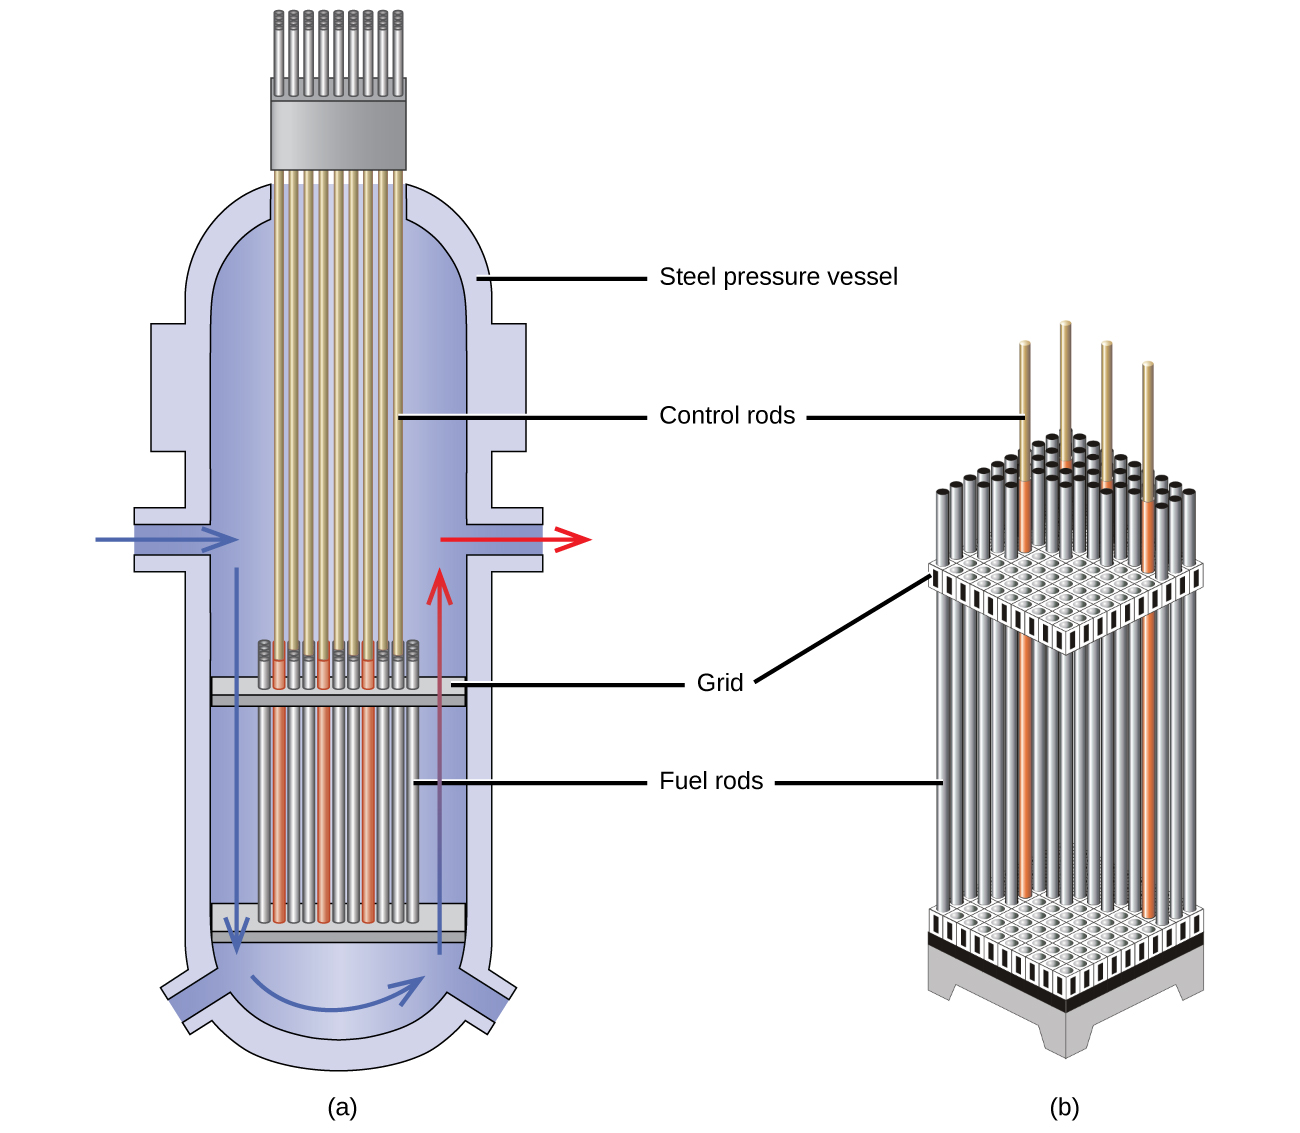 """Two diagrams are shown and labeled """"a"""" and """"b."""" Diagram a shows a cut-away view of a vertical tube with a flat, horizontal plate near the bottom that connects to a series of vertical pipes lined up next to one another and labeled """"Fuel rods."""" A second horizontal plate labeled """"Grid"""" lies at the top of the pipes and a second set of thinner, vertical pipes, labeled """"Control rods,"""" leads from this plate to the top of the container. The walls of the container are labeled """"Steel pressure vessel."""" A blue, right-facing arrow leads from an entry point in the left side of the container and is followed by a second, down-facing blue arrow and a curved, right-facing arrow that trace along the outer, bottom edge of the container. A blue and red arrow follows these and faces up the right side of the container to an exit near the right face where a red, right-facing arrow leads out. Diagram b is a cut-away image of a vertical, rectangular, three dimensional set of vertical pipes. The pipes are labeled """"Fuel rods"""" and are inserted into an upper and lower horizontal plate labeled """"Grid."""" Four thin rods extend above the pipes and are labeled """"Control rods."""